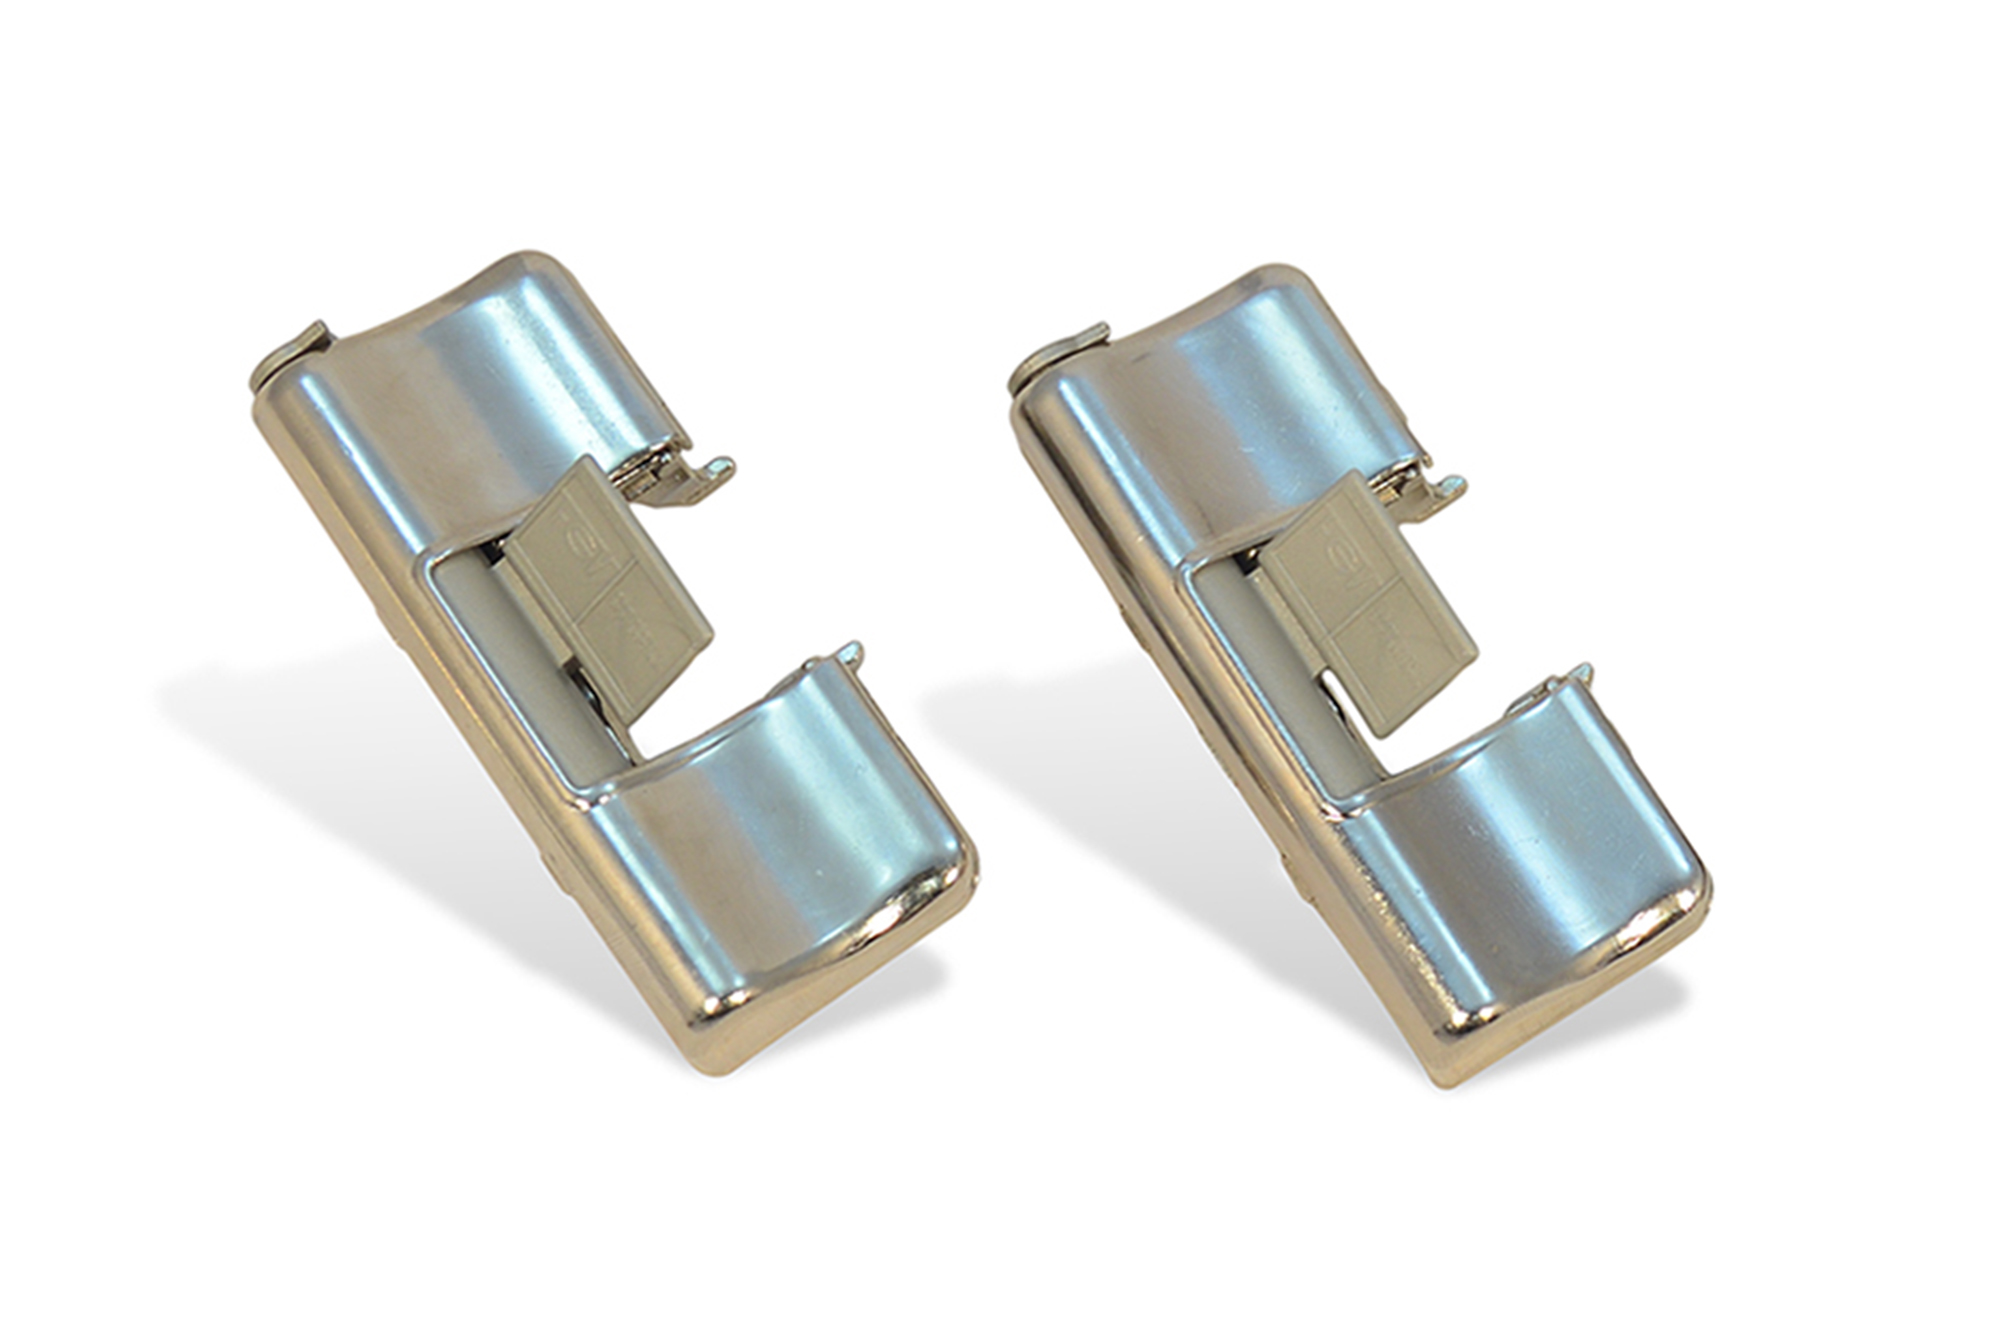 Details about 2 x FGV Italy Door Damper Kitchen Cabinet Hinge Soft Close